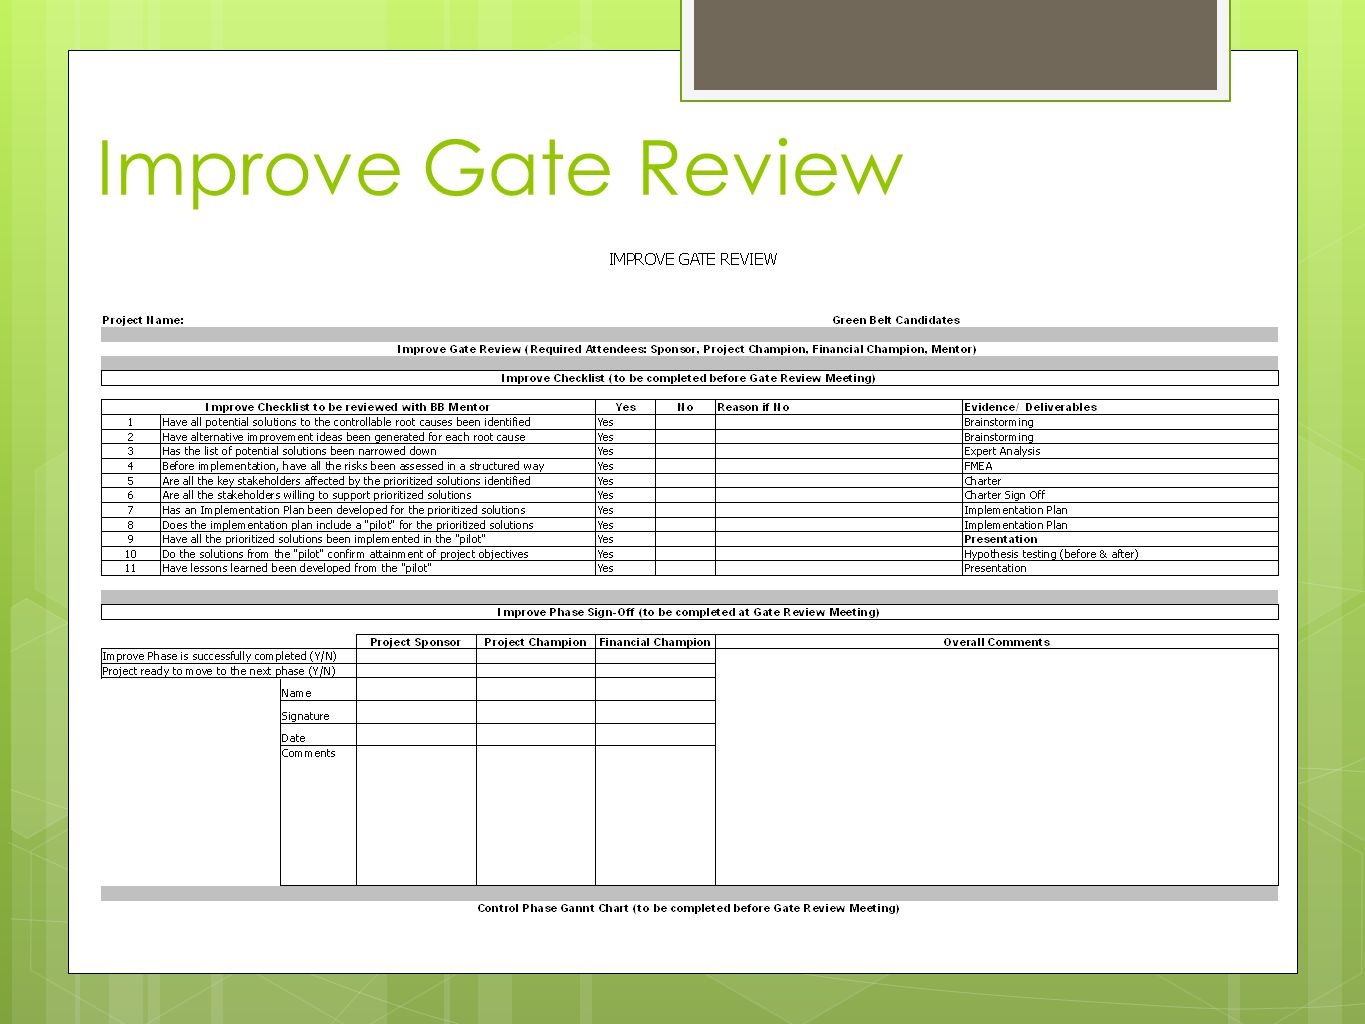 Improve Gate Review